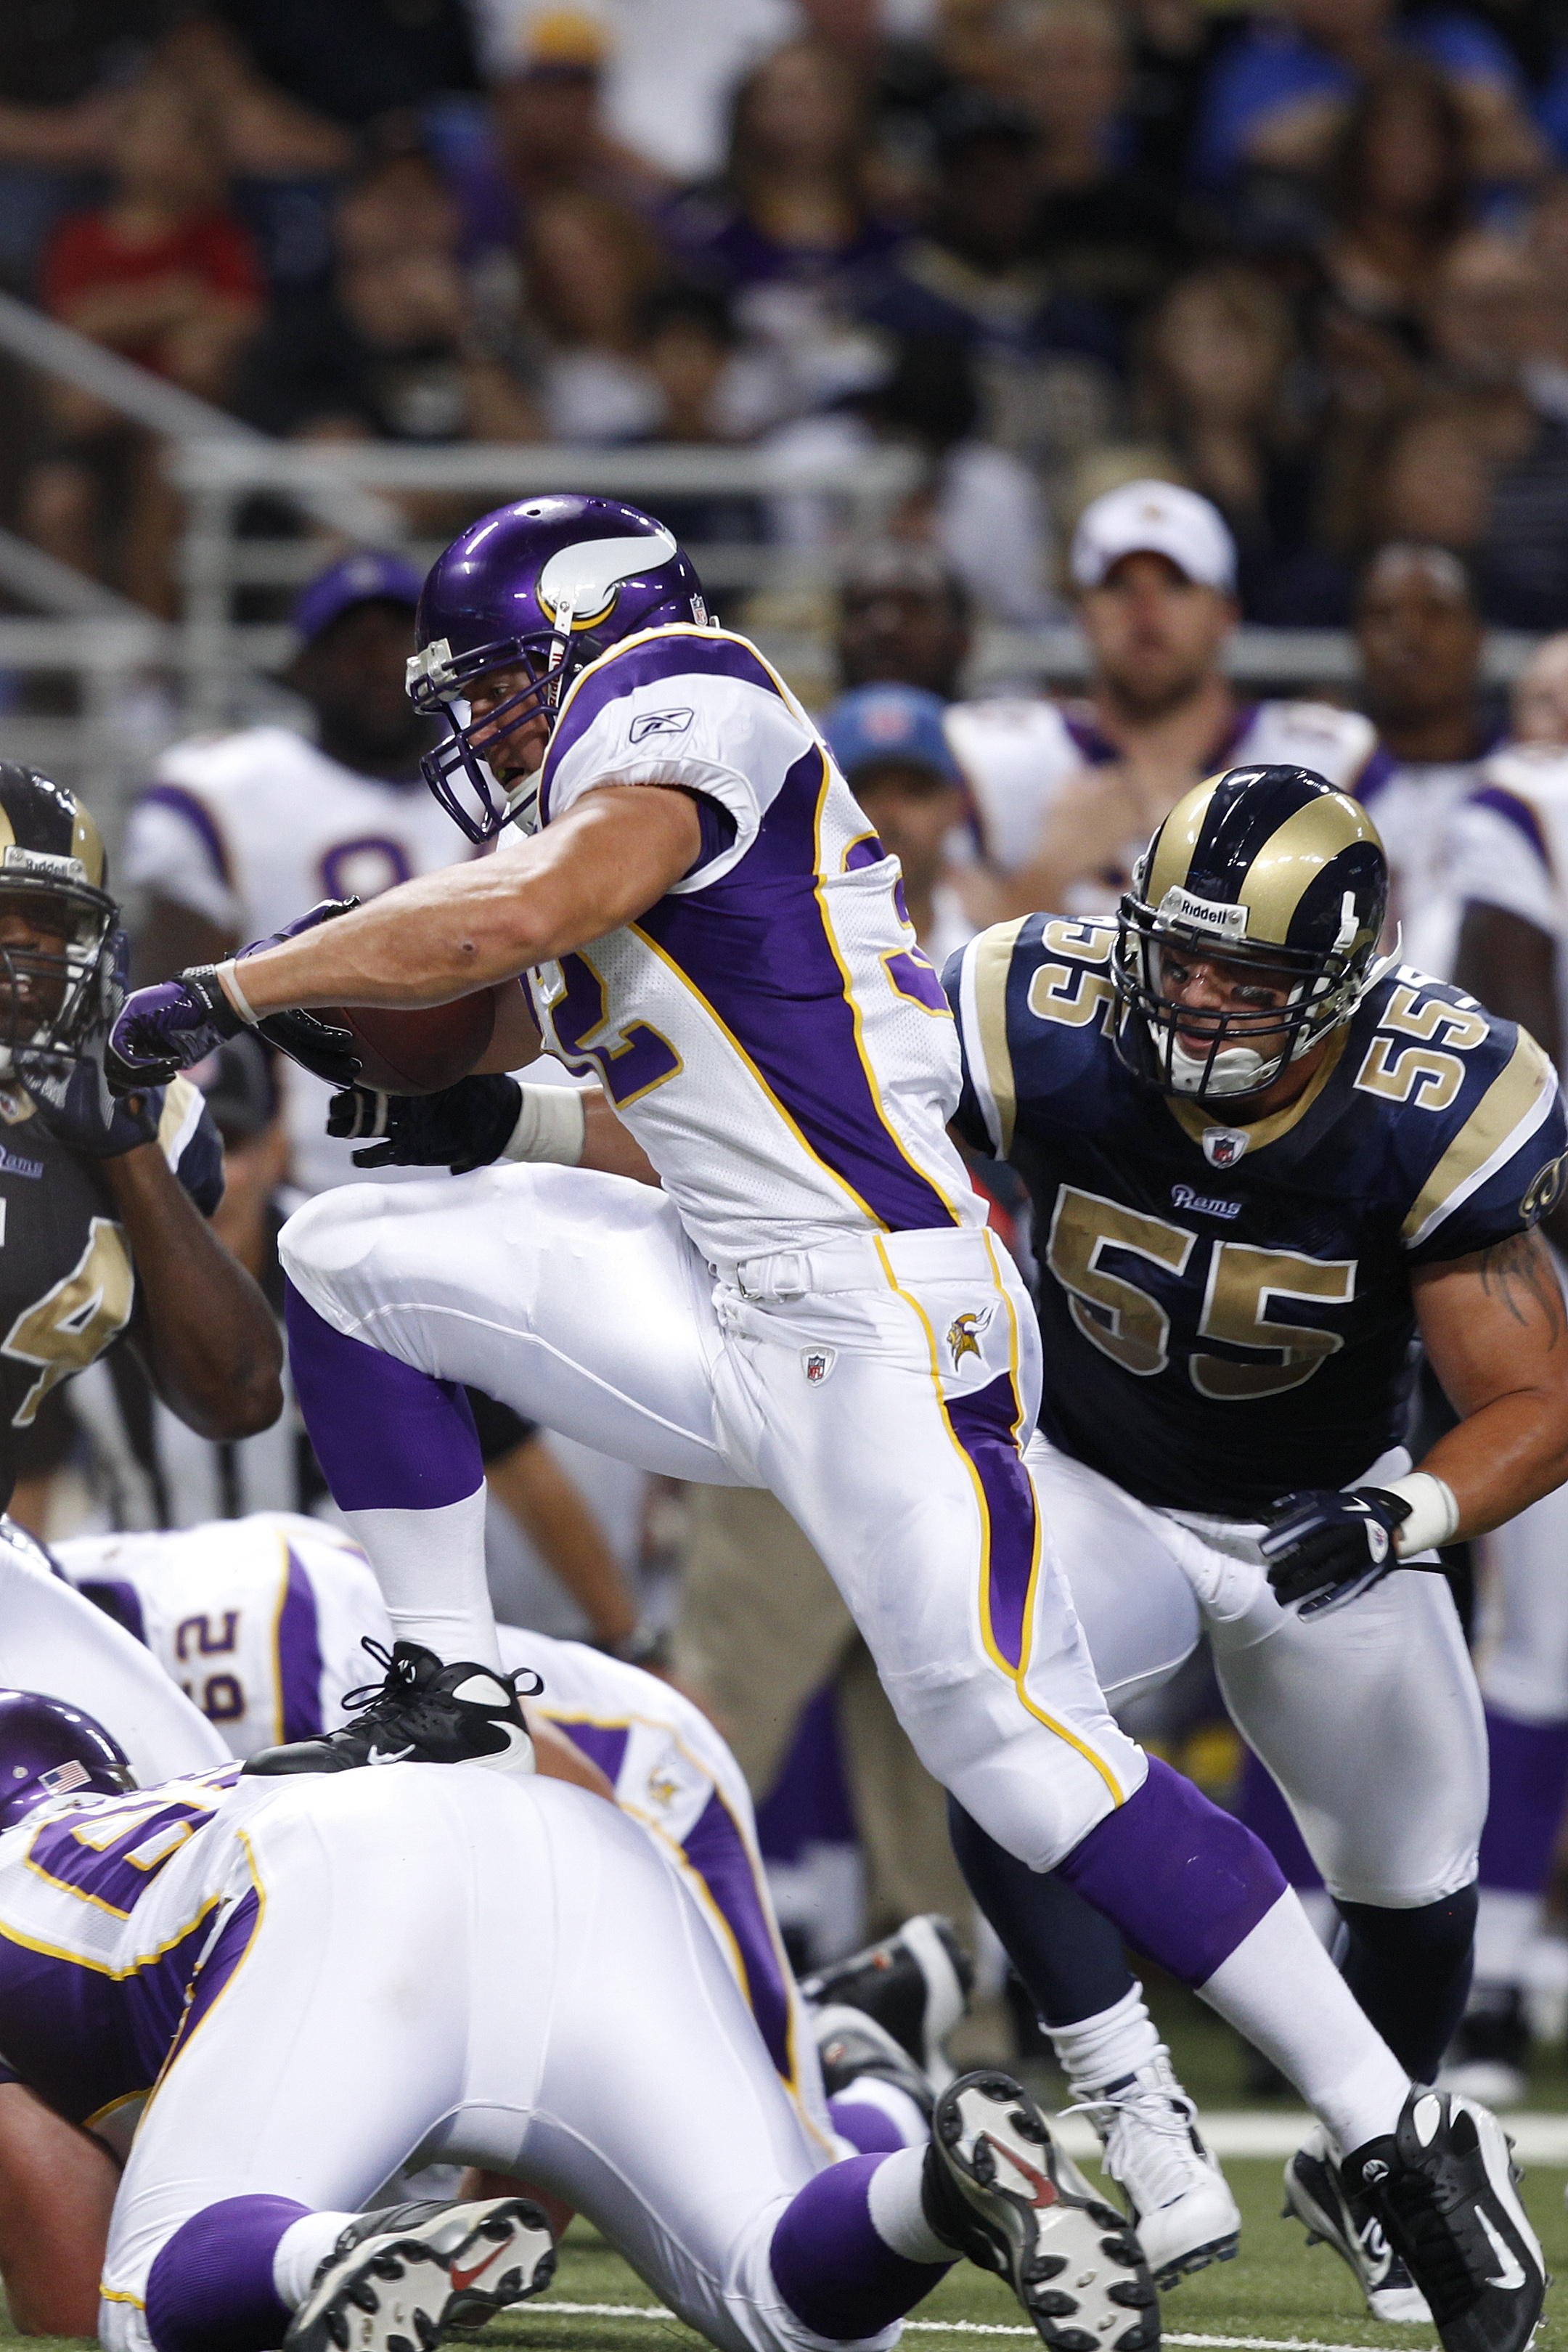 ST. LOUIS, MO - AUGUST 14: Toby Gerhart #32 of the Minnesota Vikings runs the ball against the St. Louis Rams during the preseason game at Edward Jones Dome on August 14, 2010 in St. Louis, Missouri. The Vikings defeated the Rams 28-7. (Photo by Joe Robbi